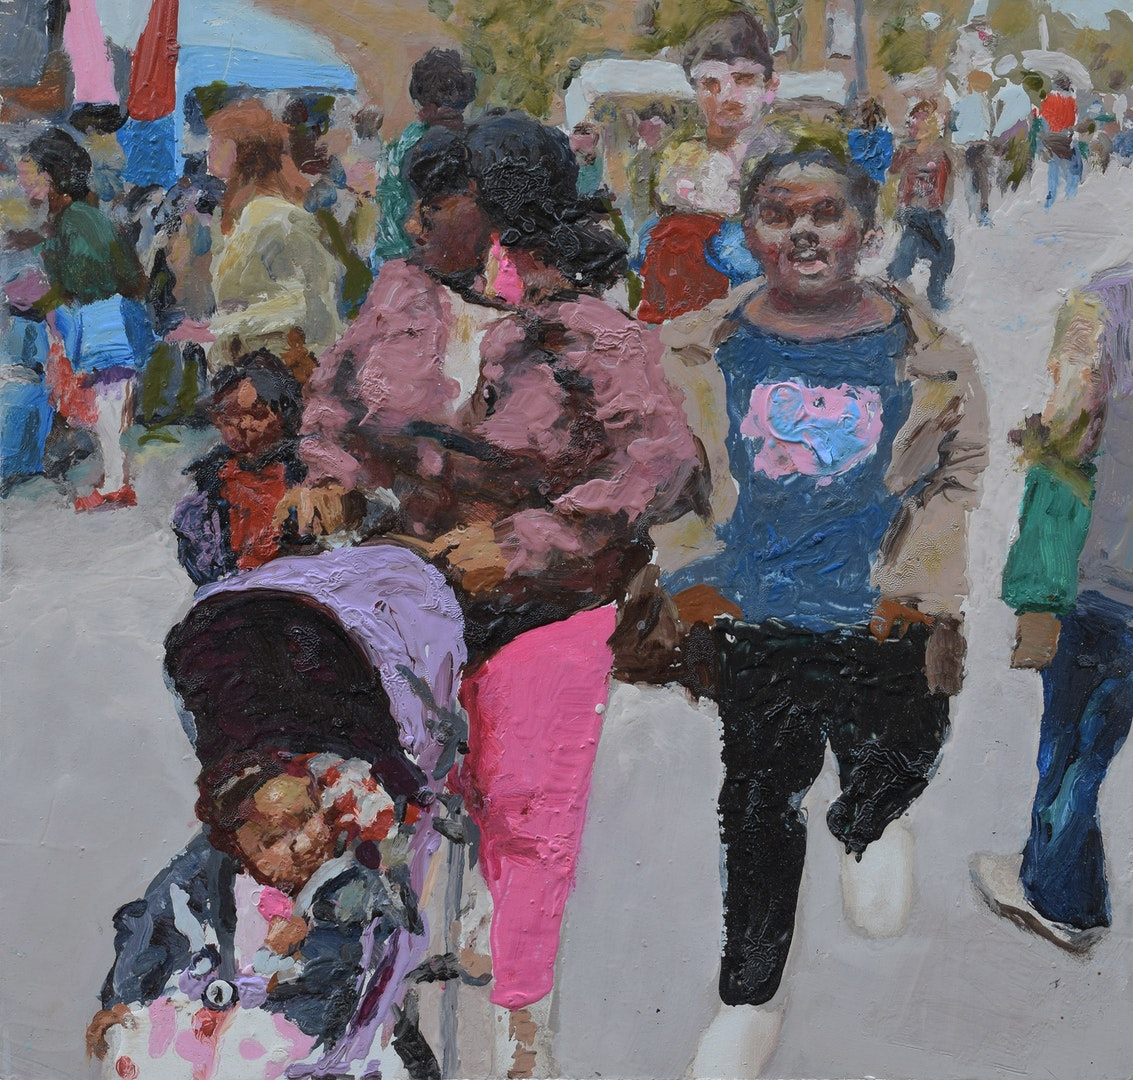 'Family shopping (Deptford)', Trevor Burgess, Oil on board, 32.5 x 34 cm